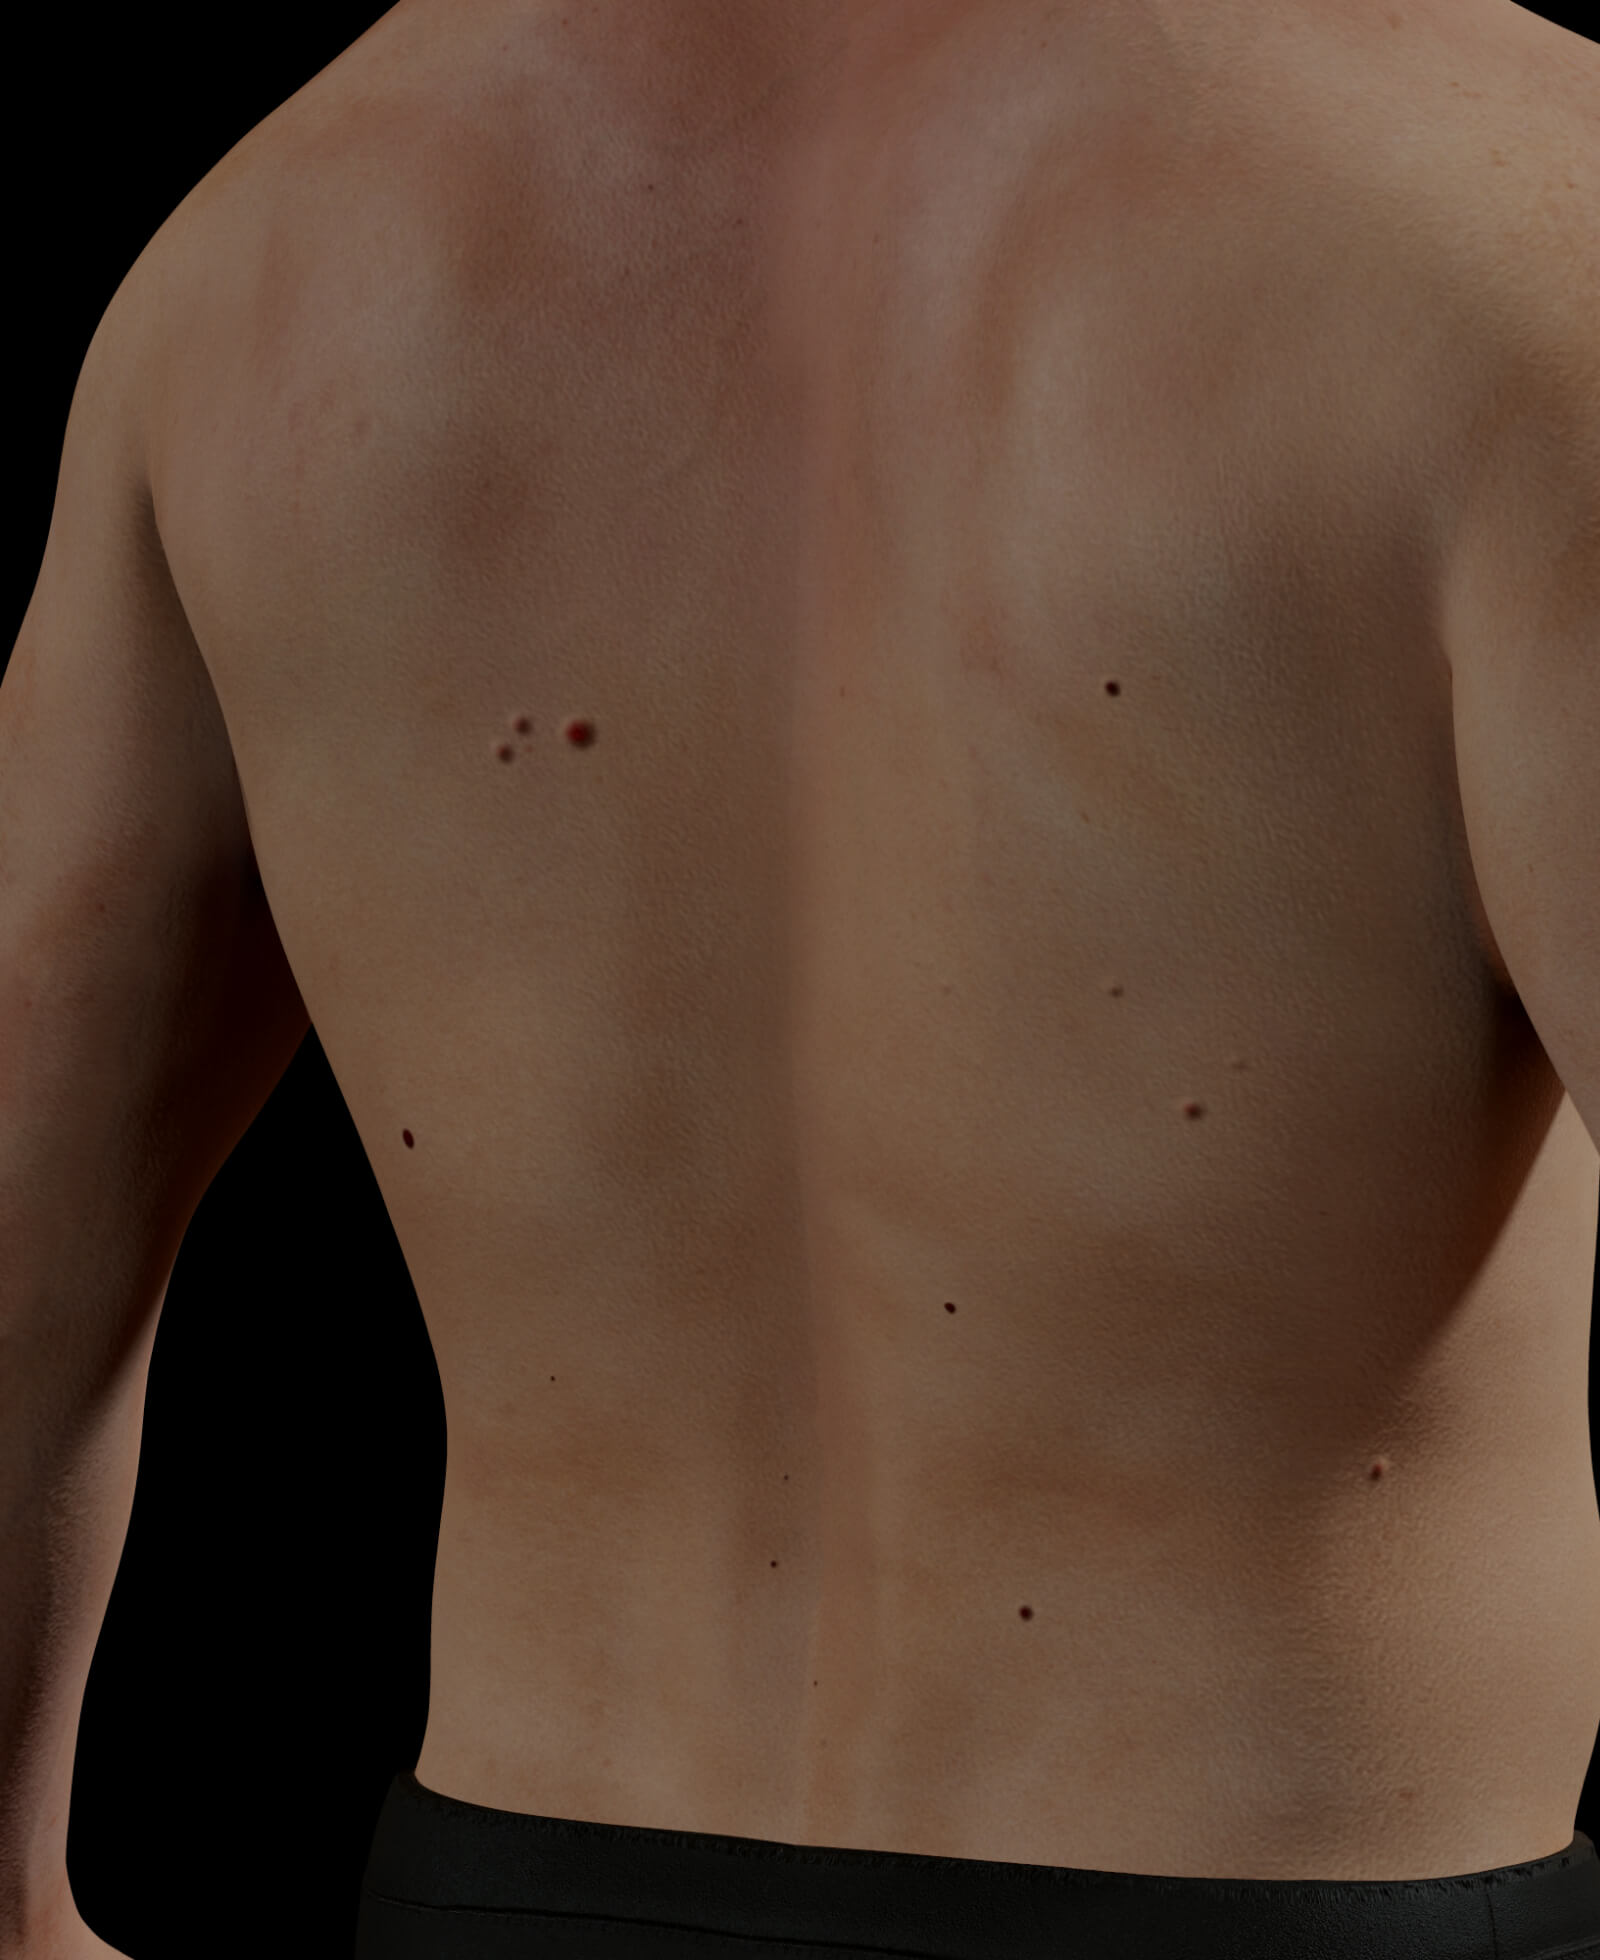 Clinique Chloé patient with cherry angiomas over his body